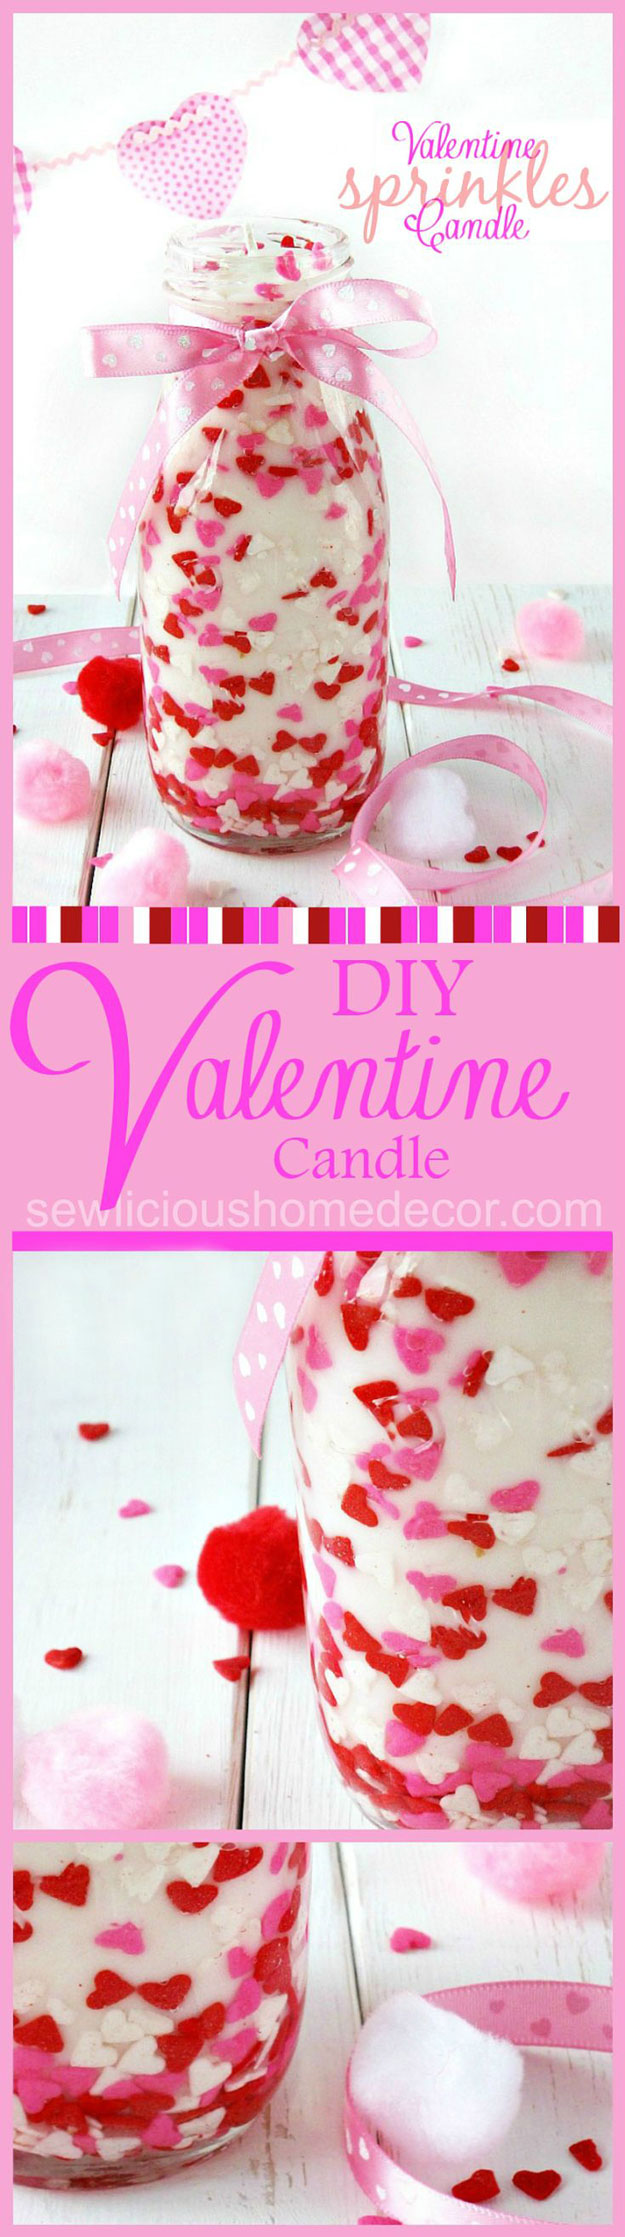 Mason Jar Valentine Gifts and Crafts   DIY Ideas for Valentines Day for Cute Gift Giving and Decor   Valentine Sprinkles Candle Gift   #valentines